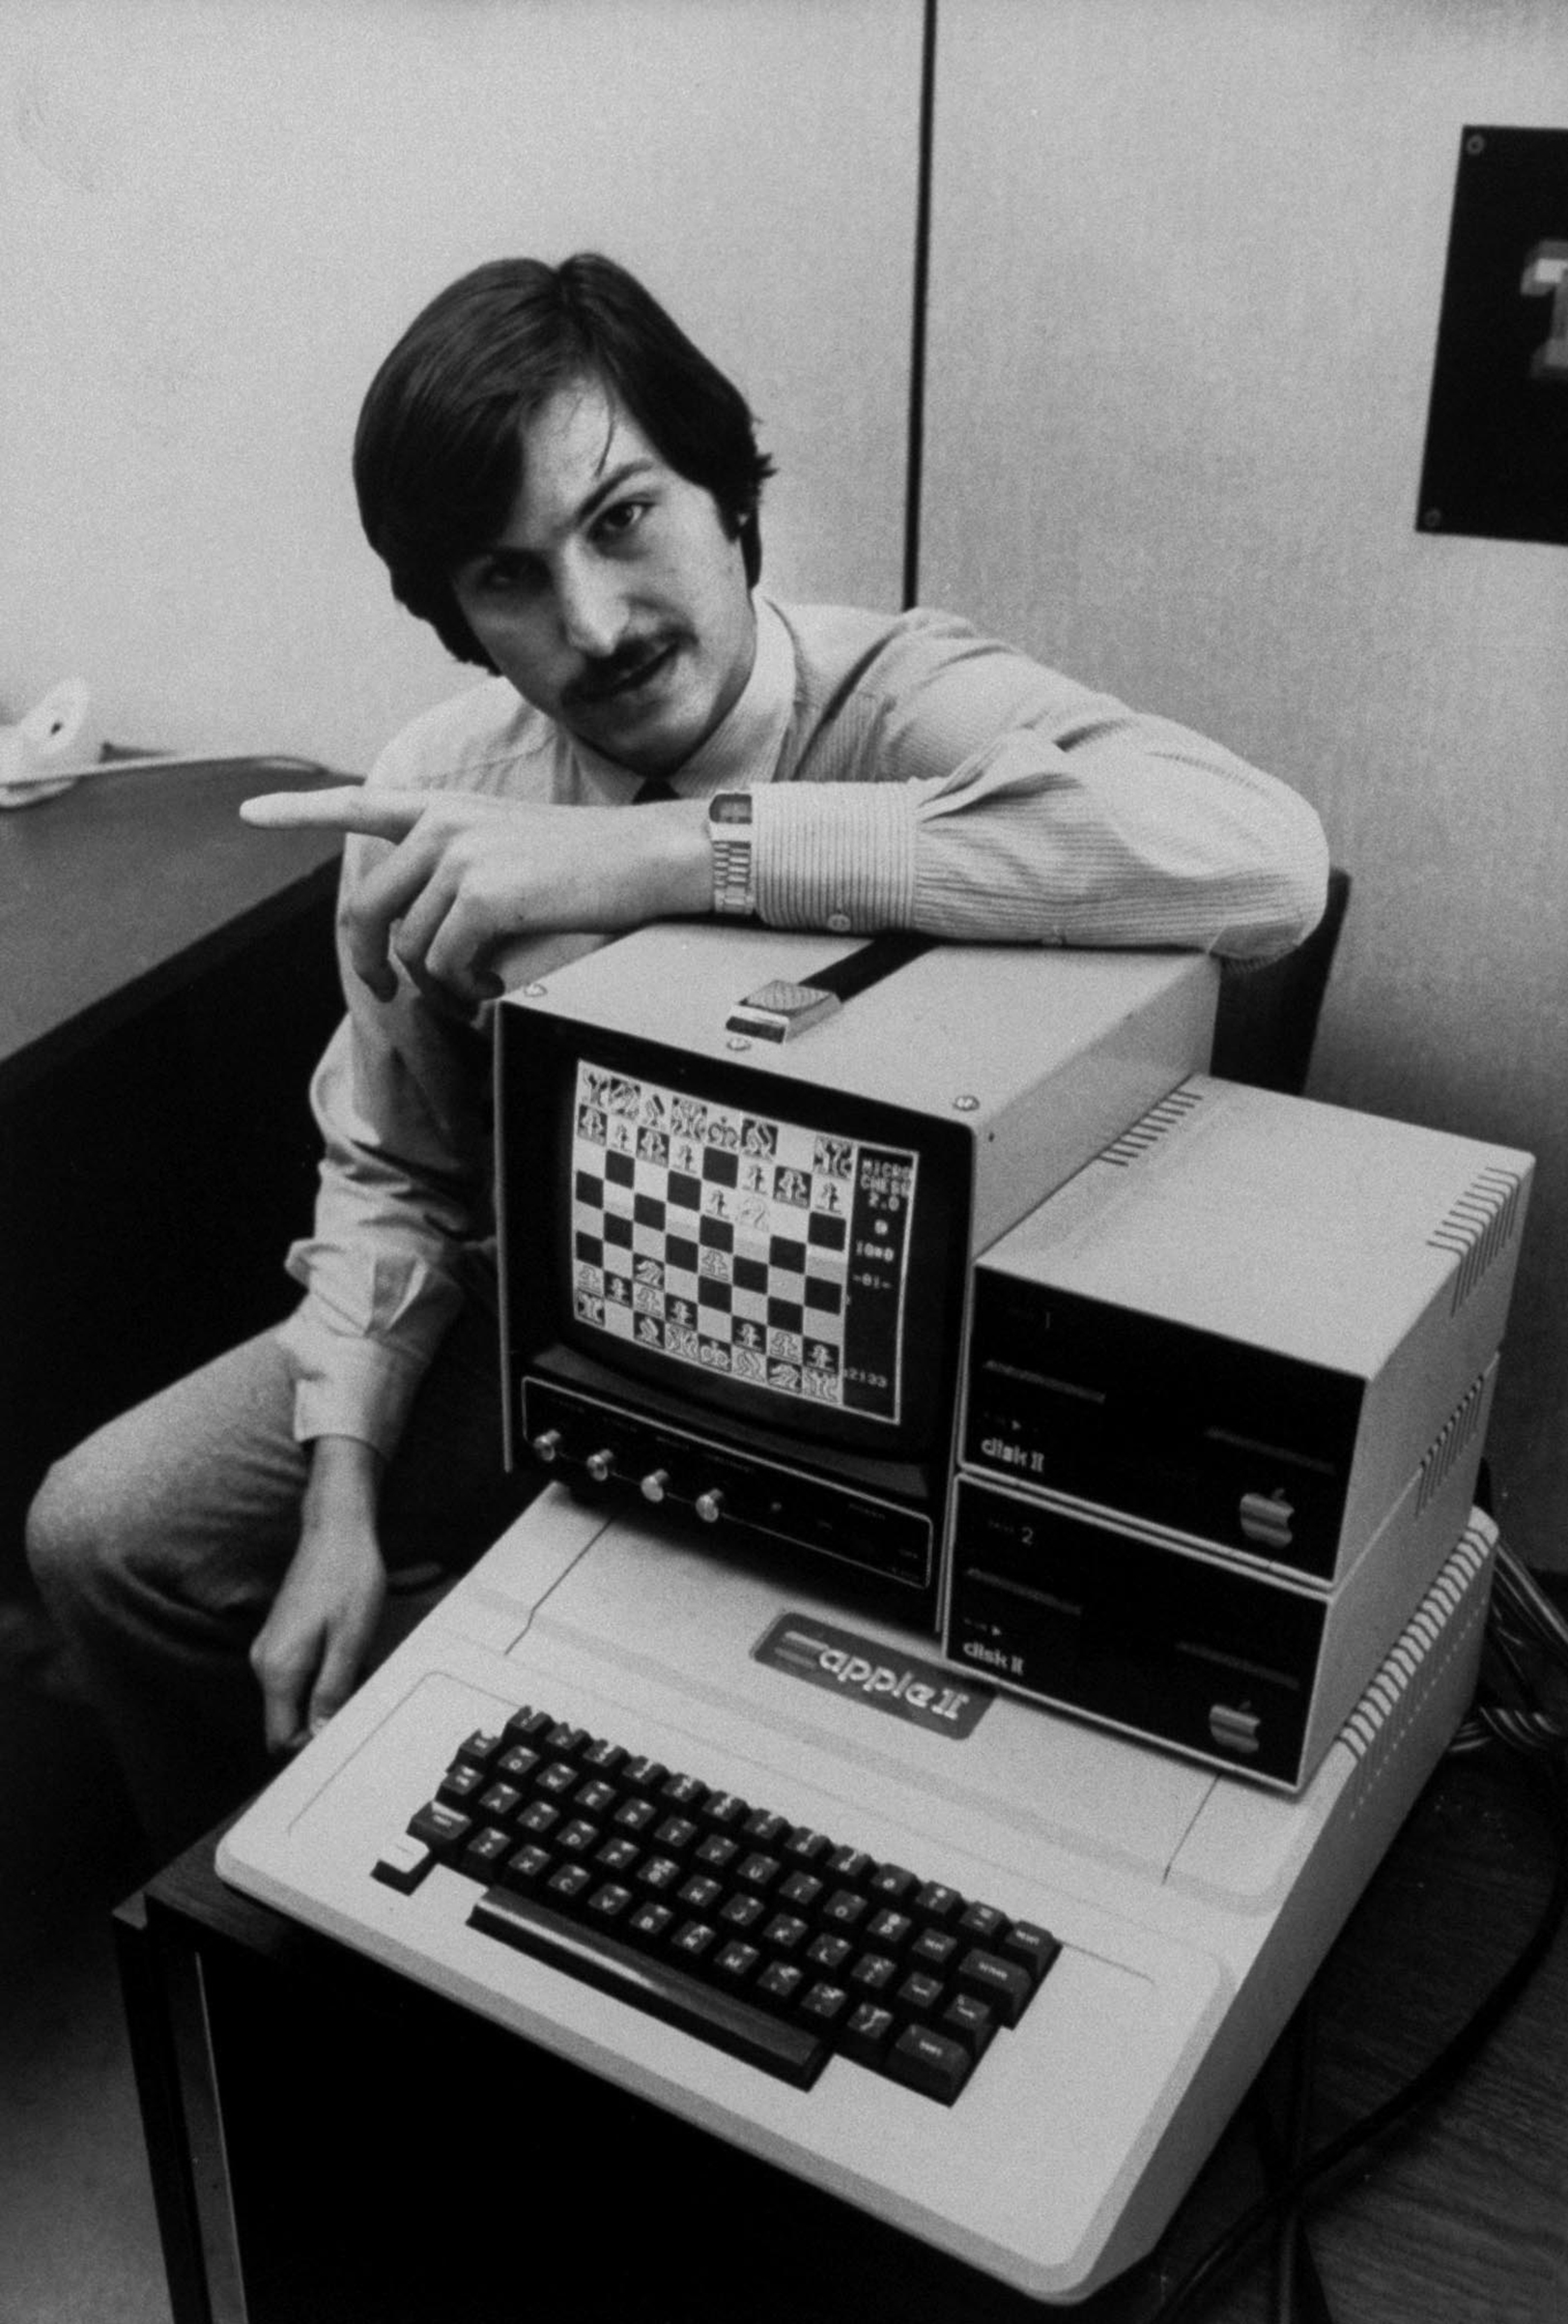 Steve Jobs with Apple II computer, with chess game displayed on screen.